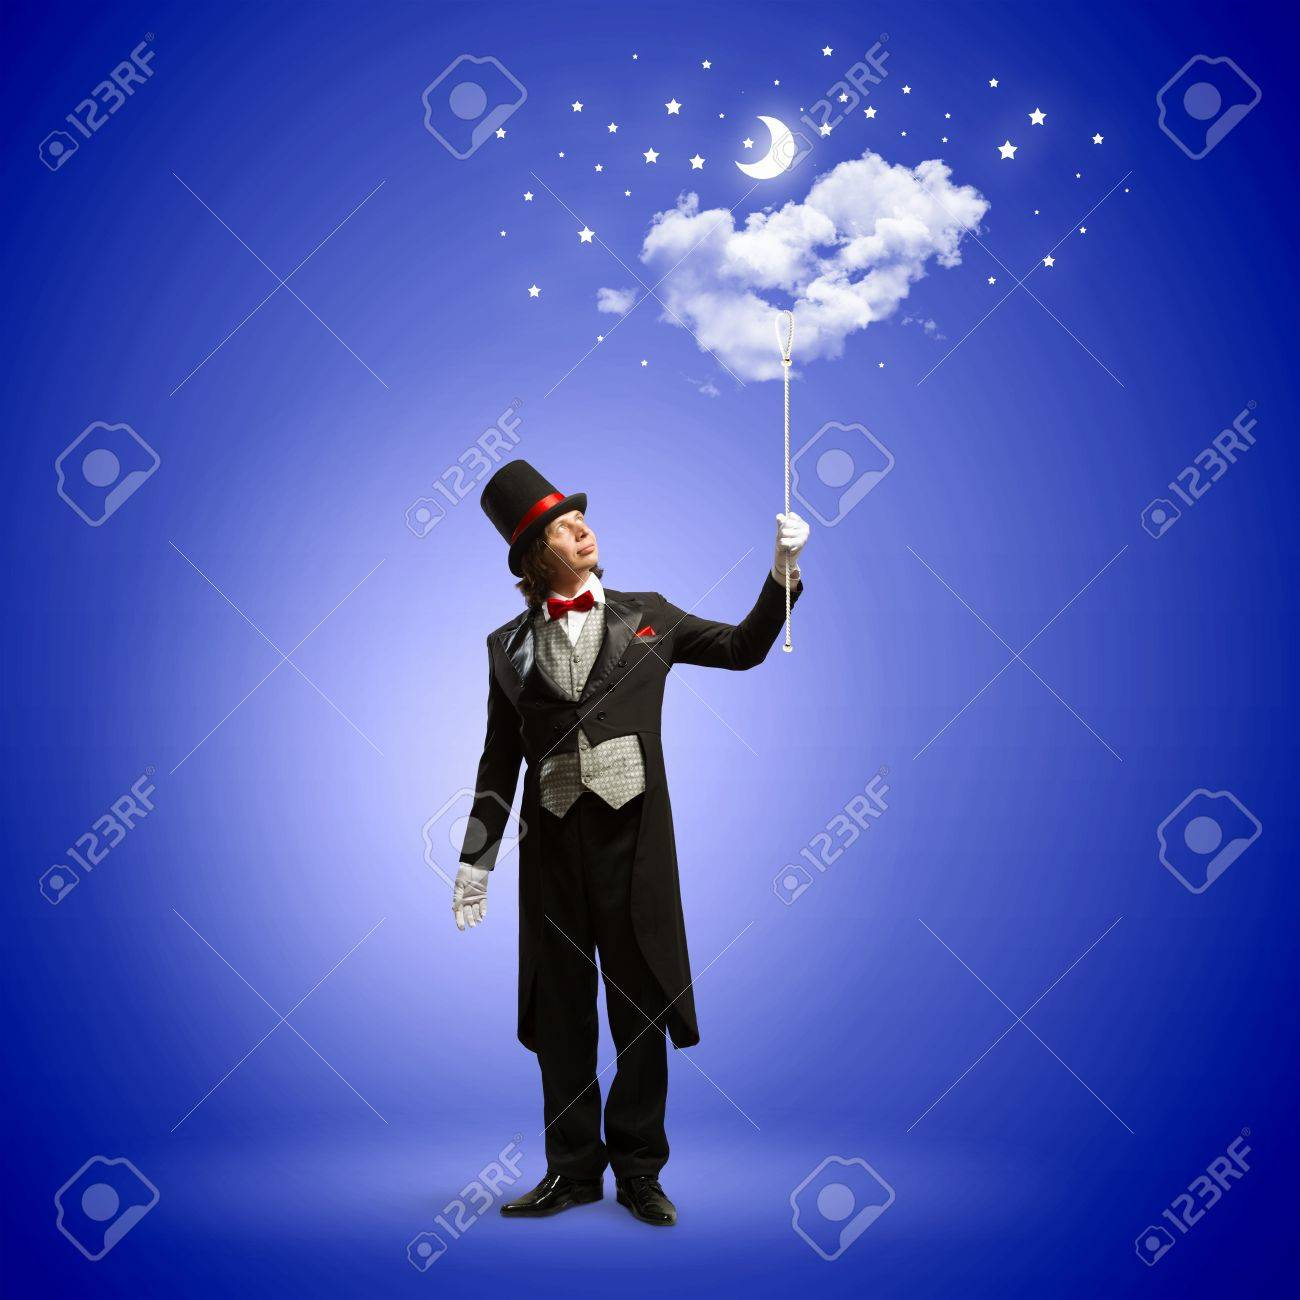 Image of man magician against color background Stock Photo - 22040104